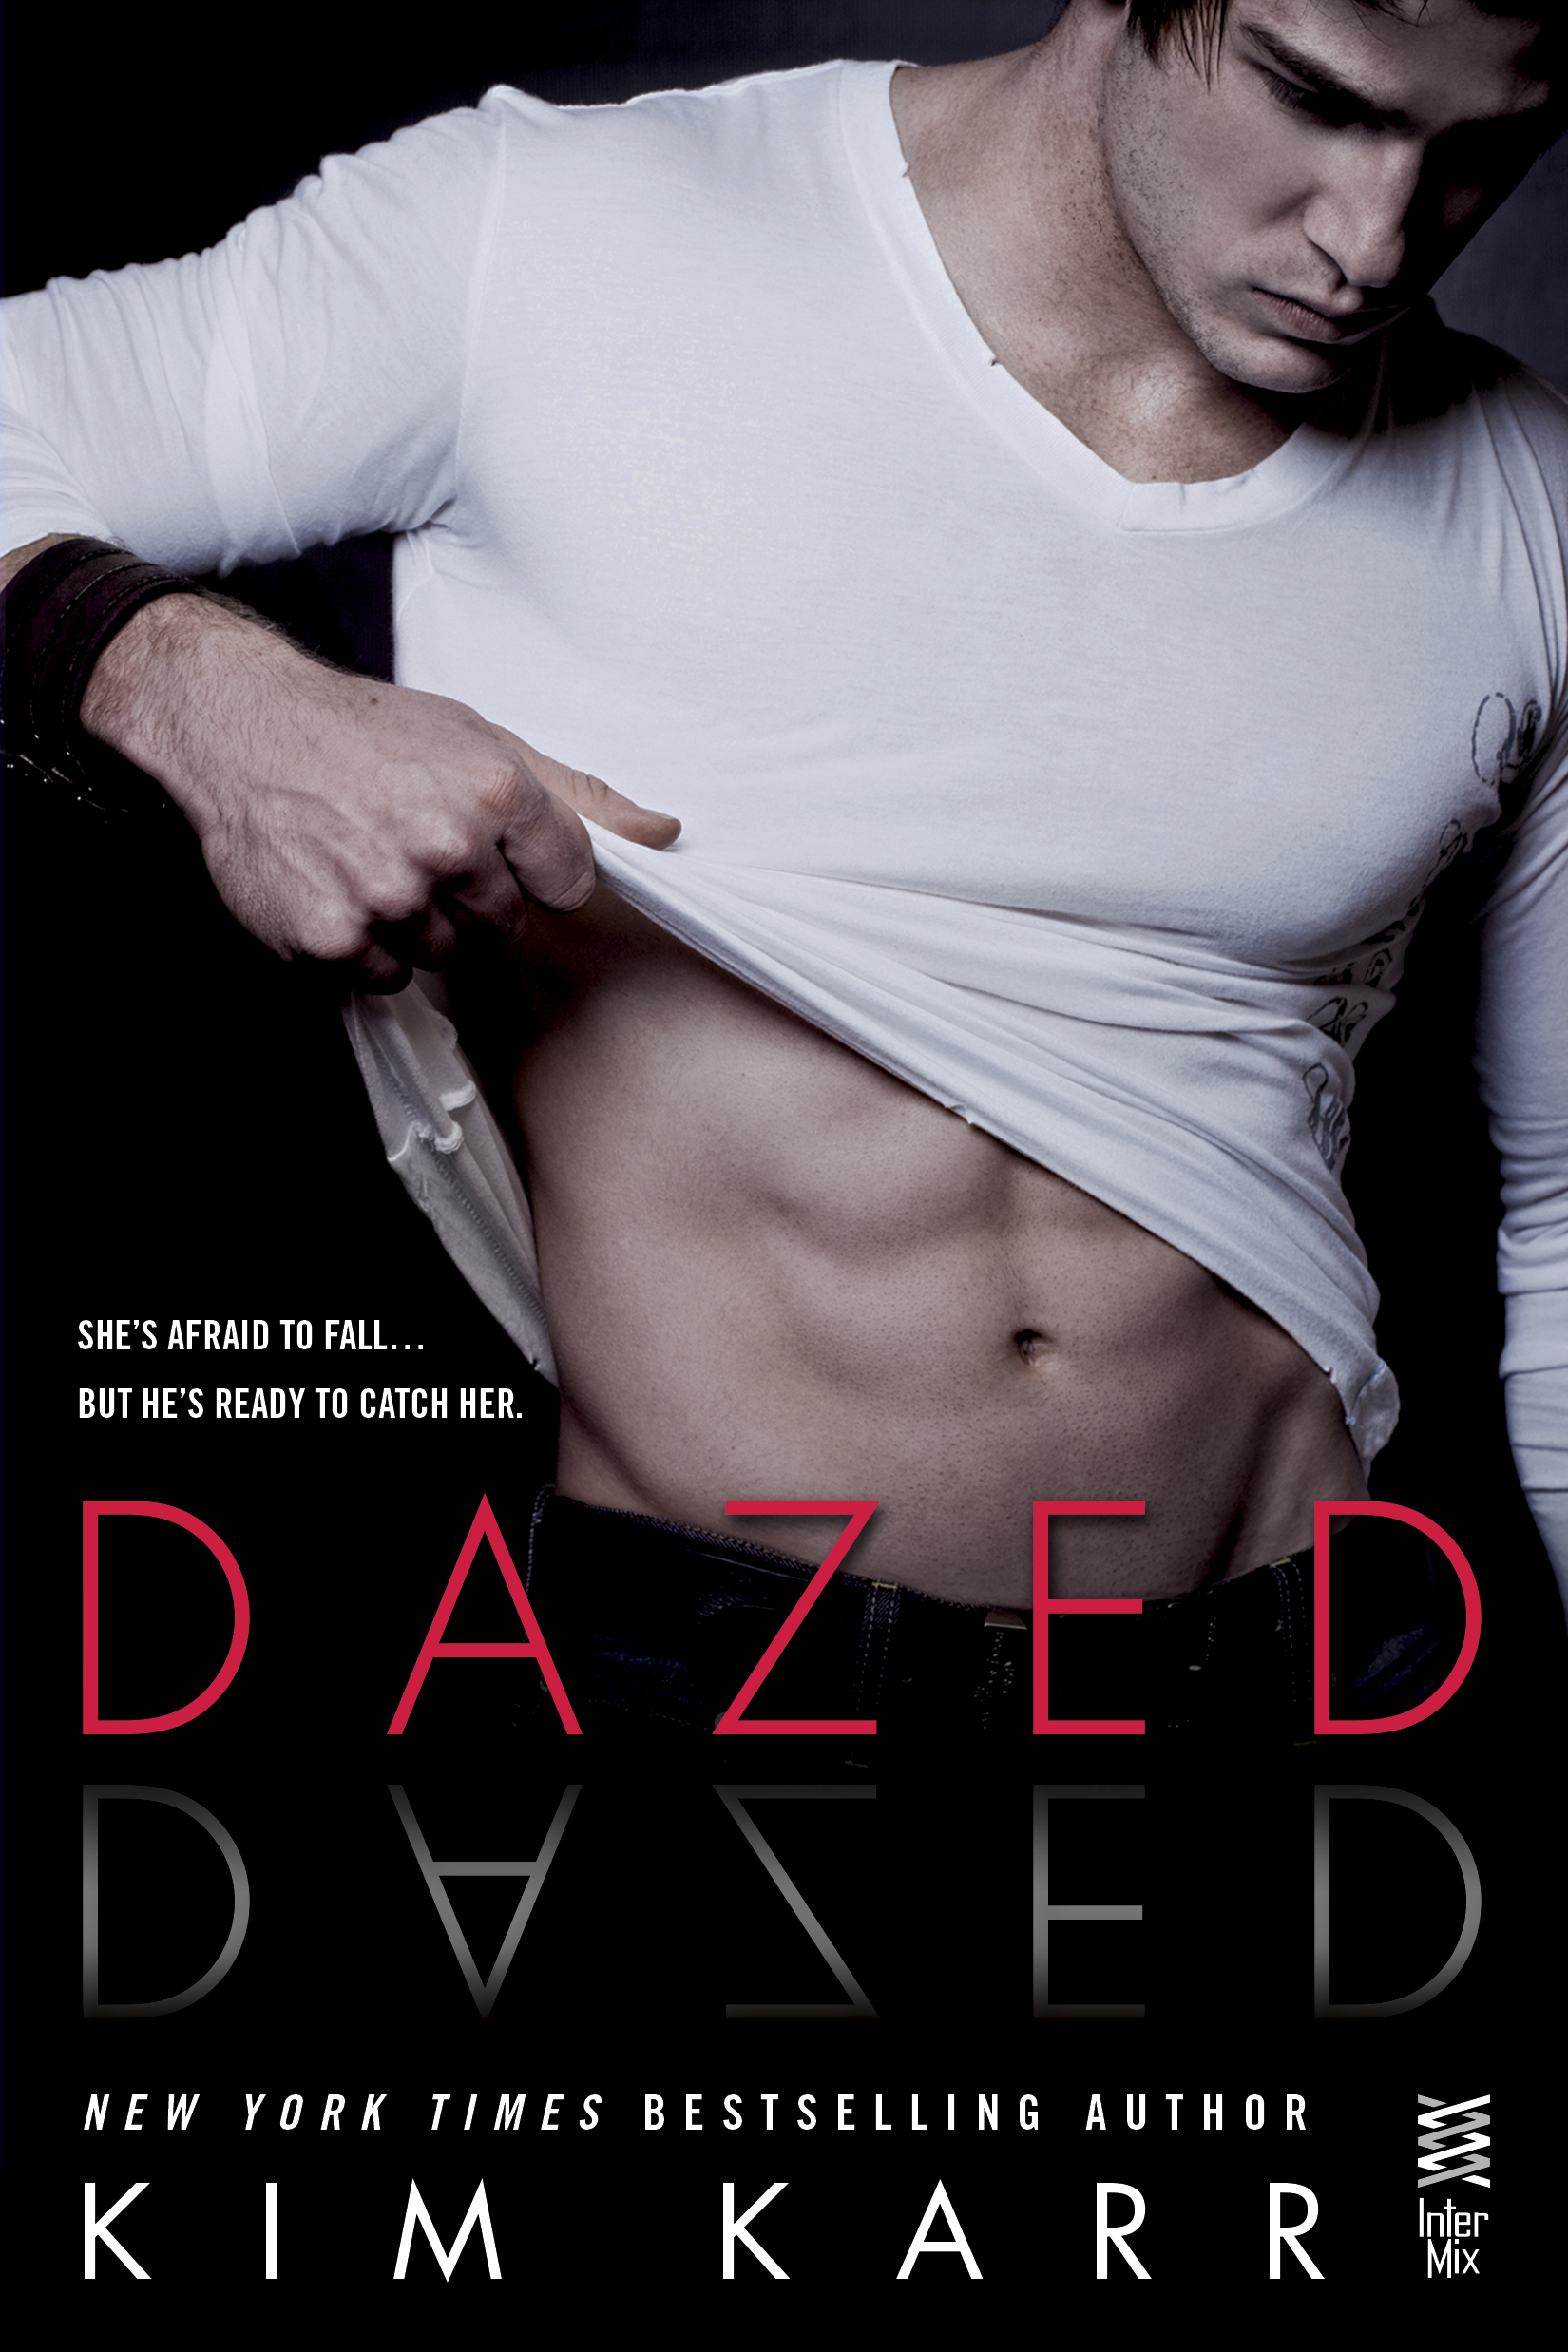 Blog Tour, Book Review & Giveaway: Dazed (Connections series 2.5) by Kim Karr